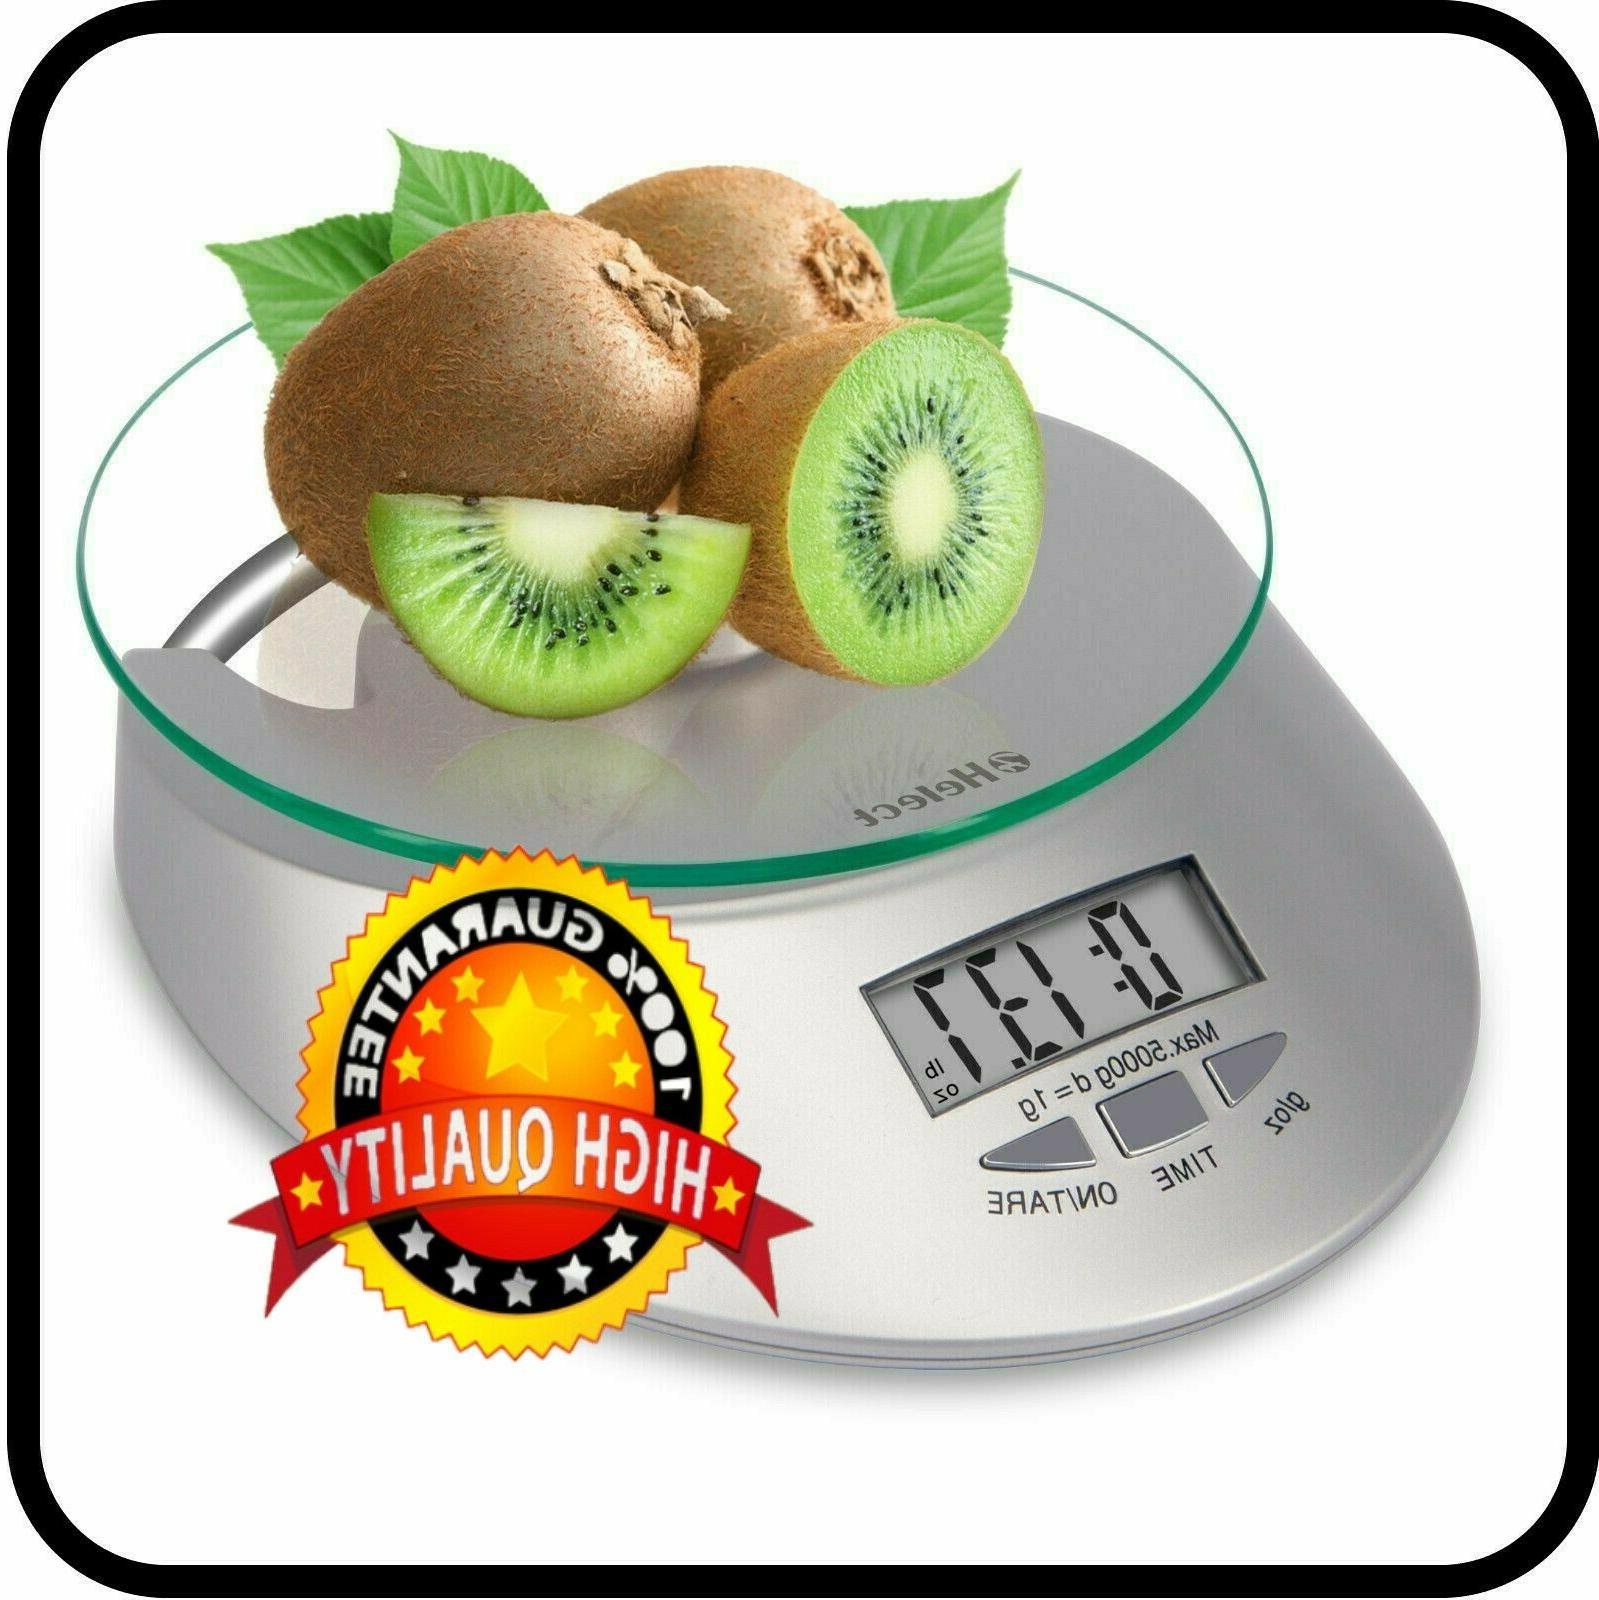 kitchen scale 11lb 5kg multifunction food scale